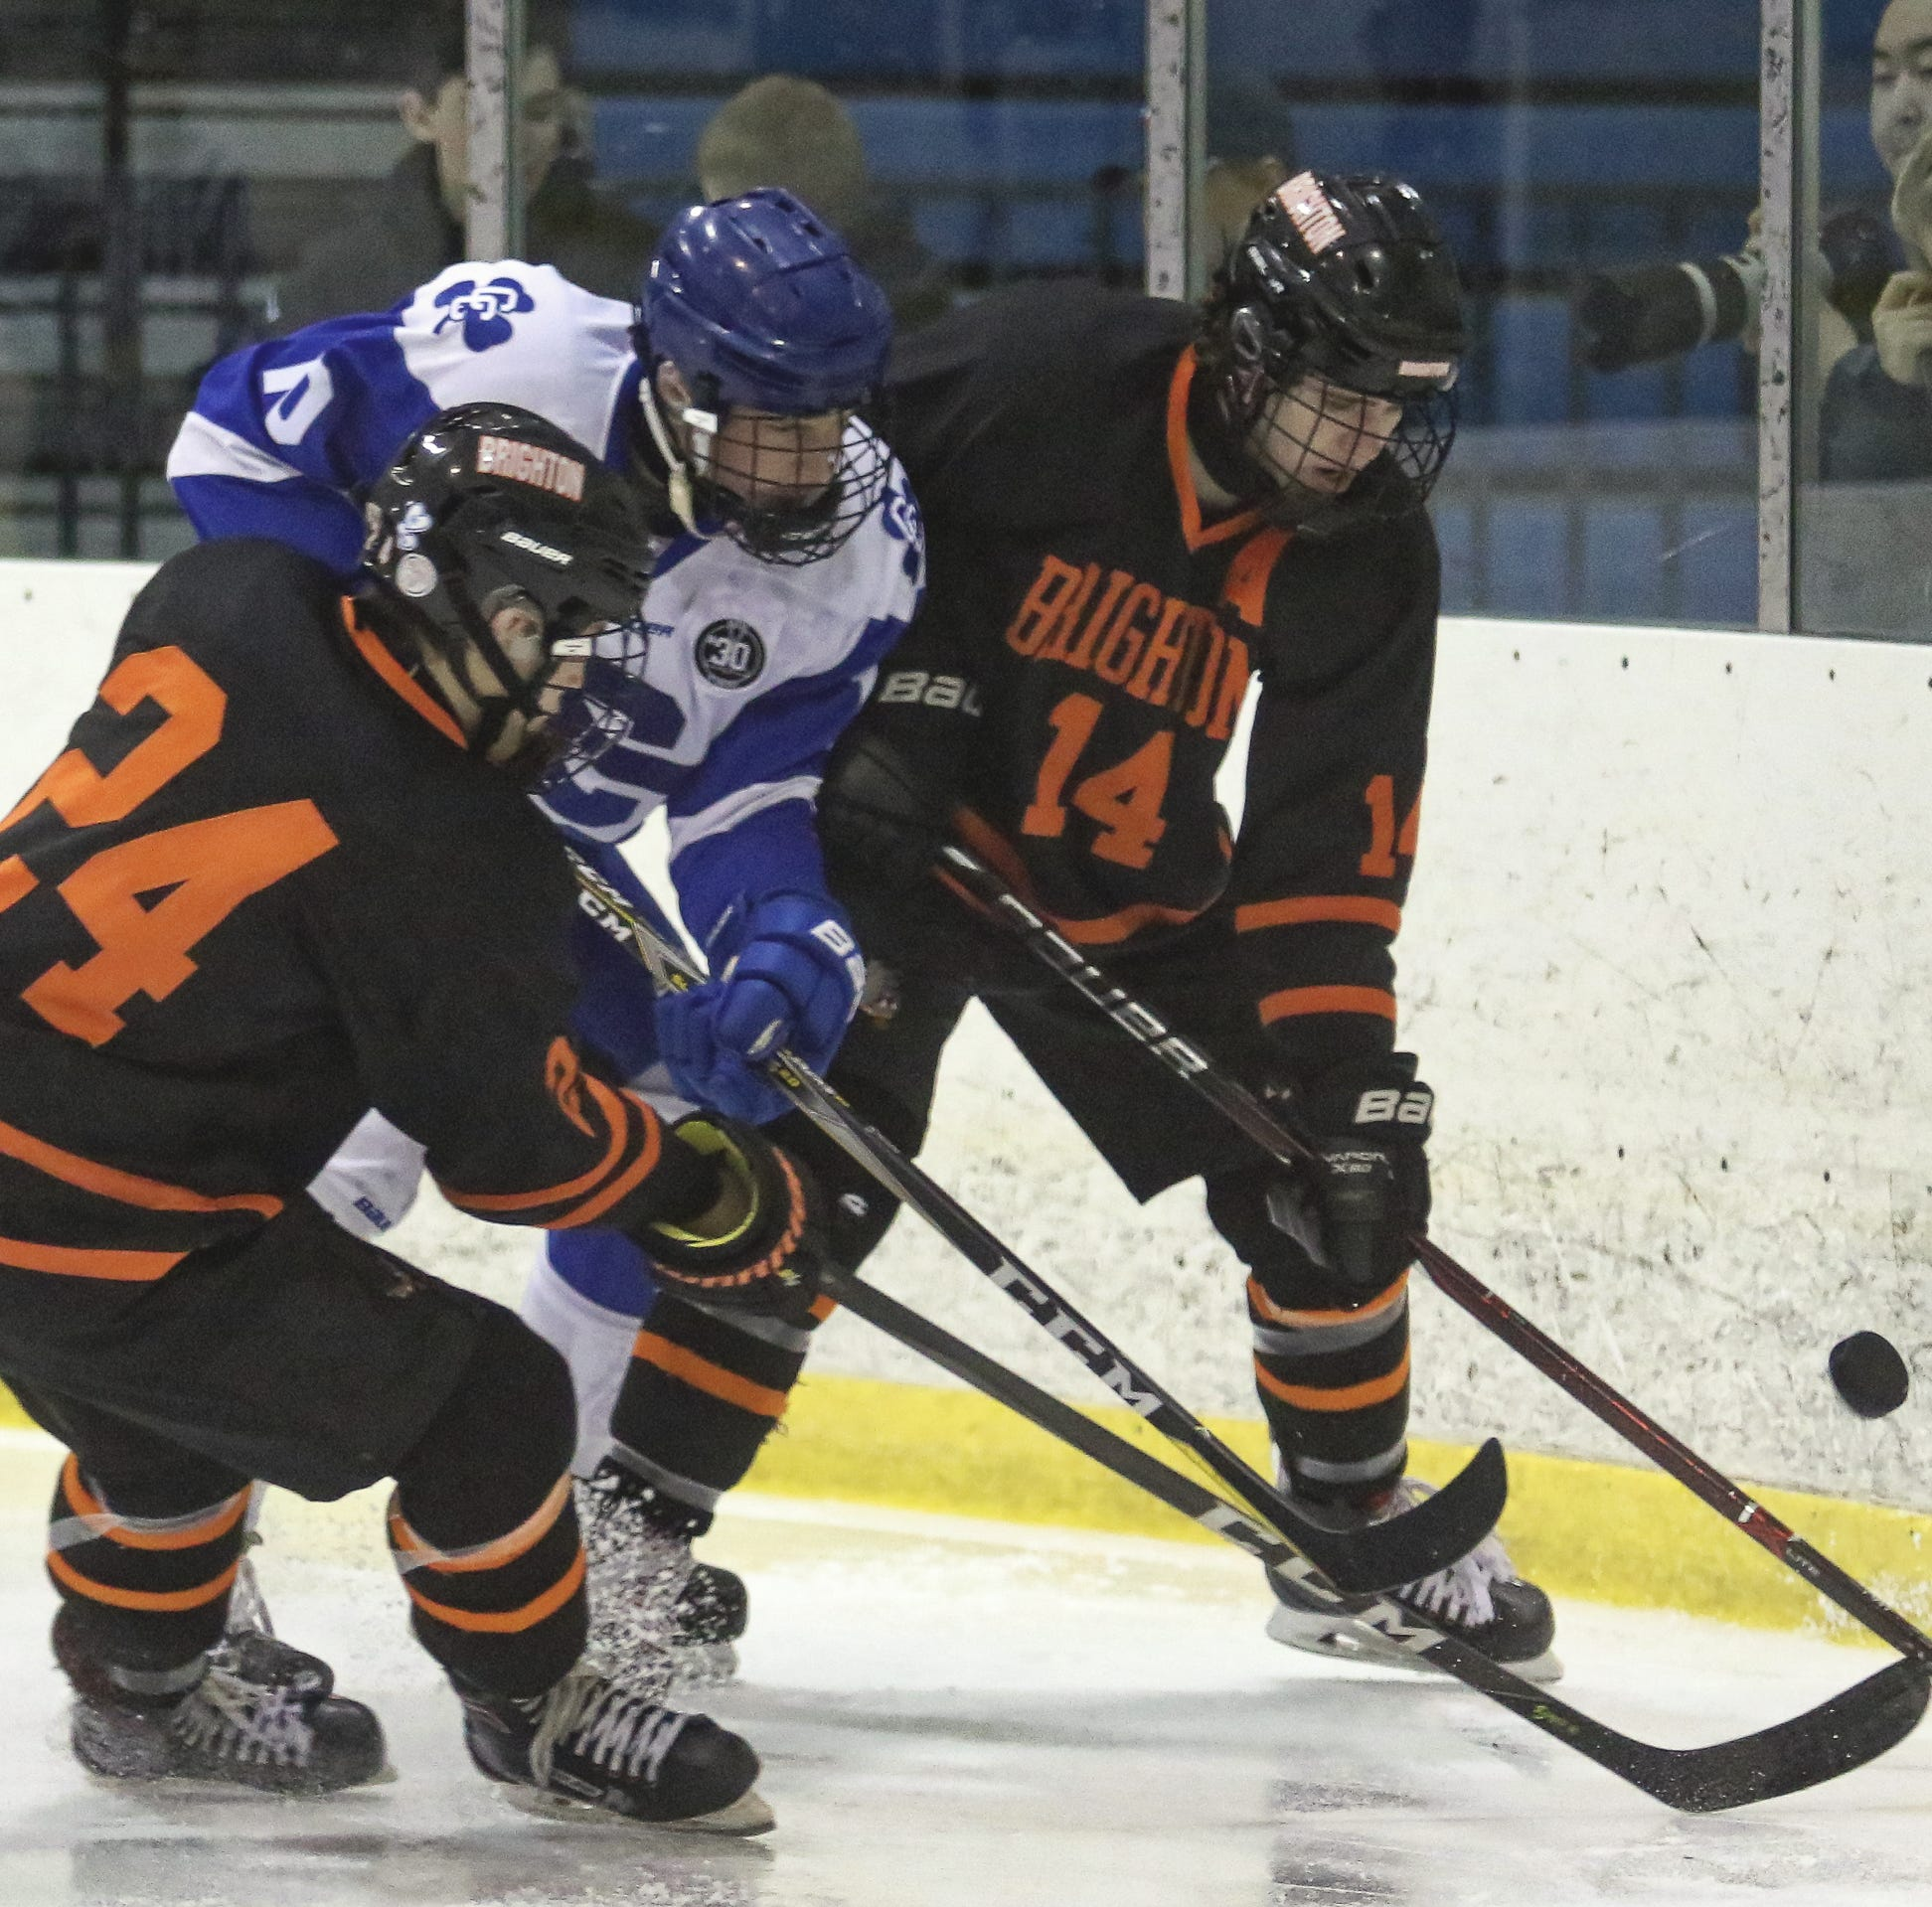 Detroit Catholic Central wins hockey showdown with Brighton, 4-1